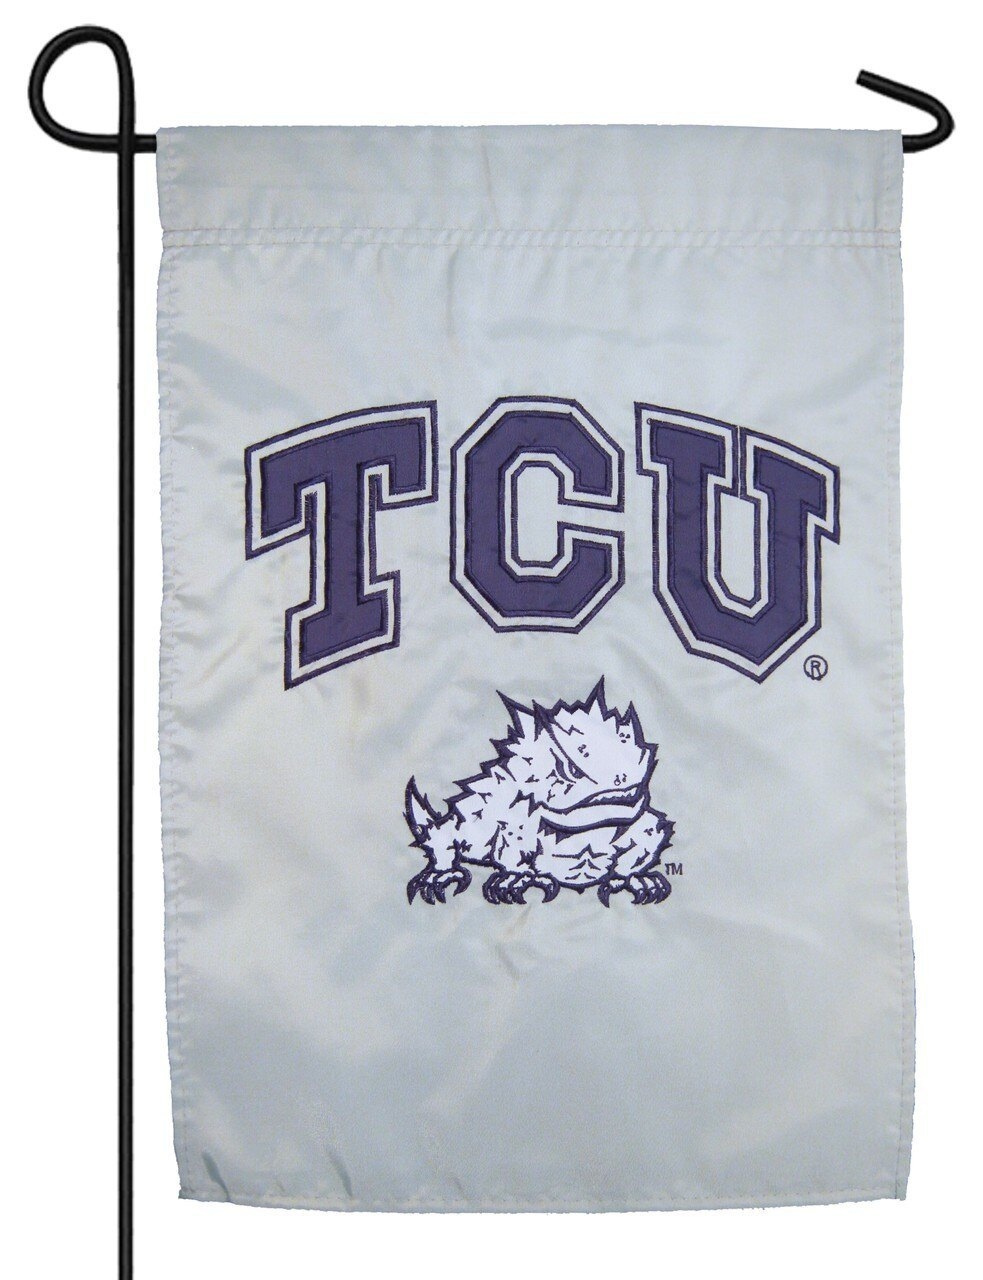 TCU Horned Frogs Applique Garden Flag - Sports Flags/College and University/Texas Christian University Flags - I AmEricas Flags